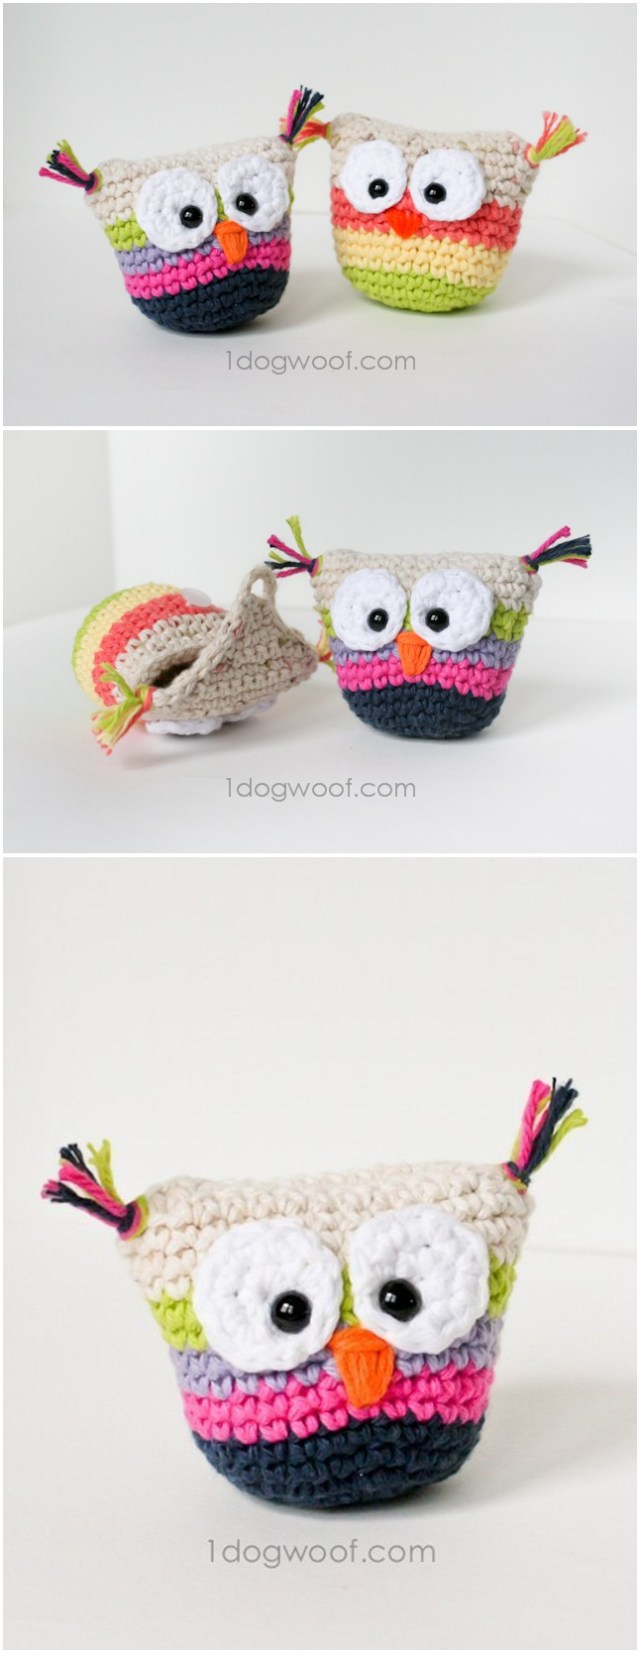 Cute and adorable owl crochet pattern. Free crochet owl pattern ideas for beginners, Find best 15 creative ideas of owl crochet.